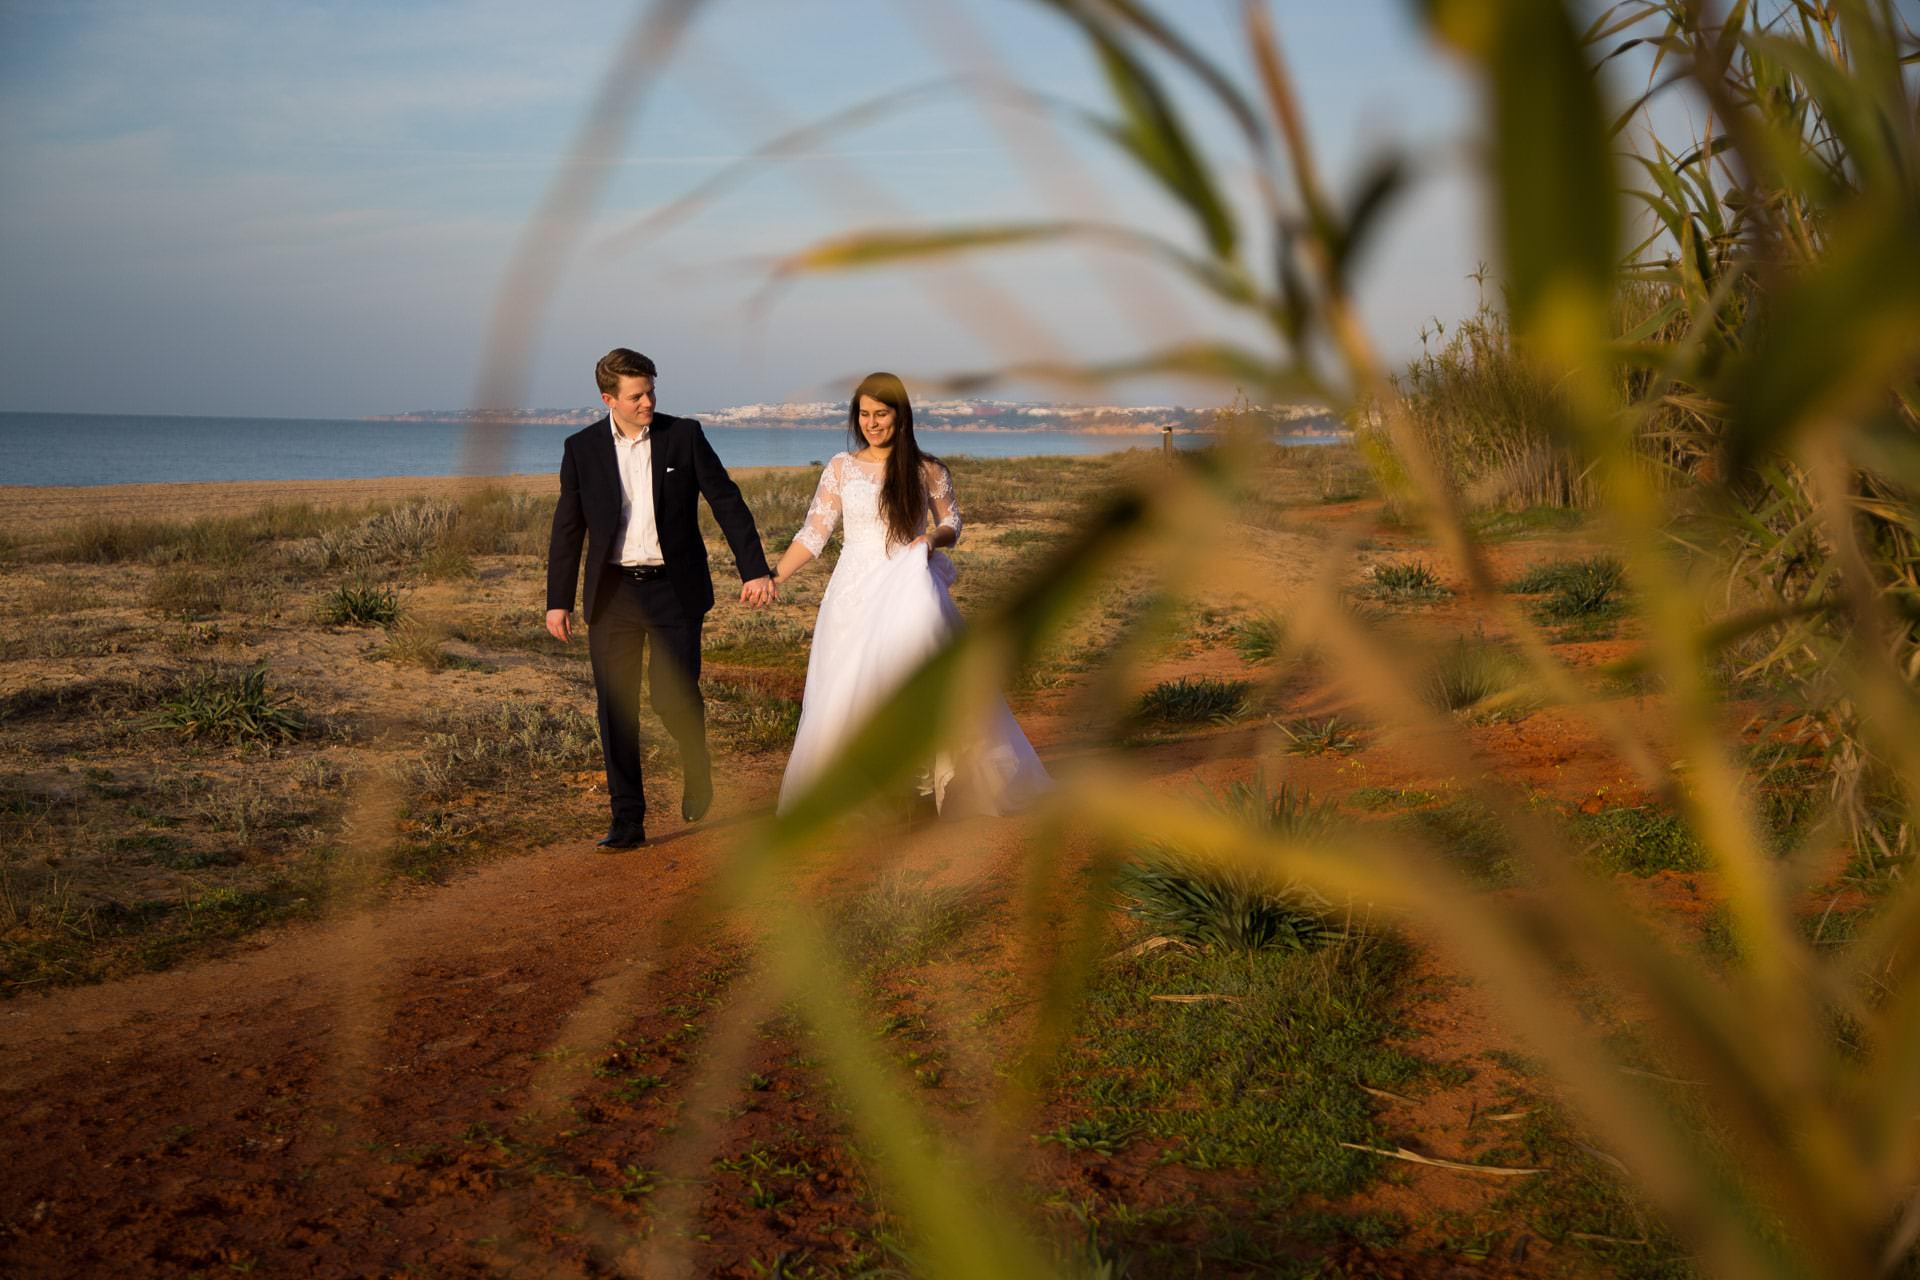 Hilton Vilamoura Wedding Photographer 84 Bristol Wedding